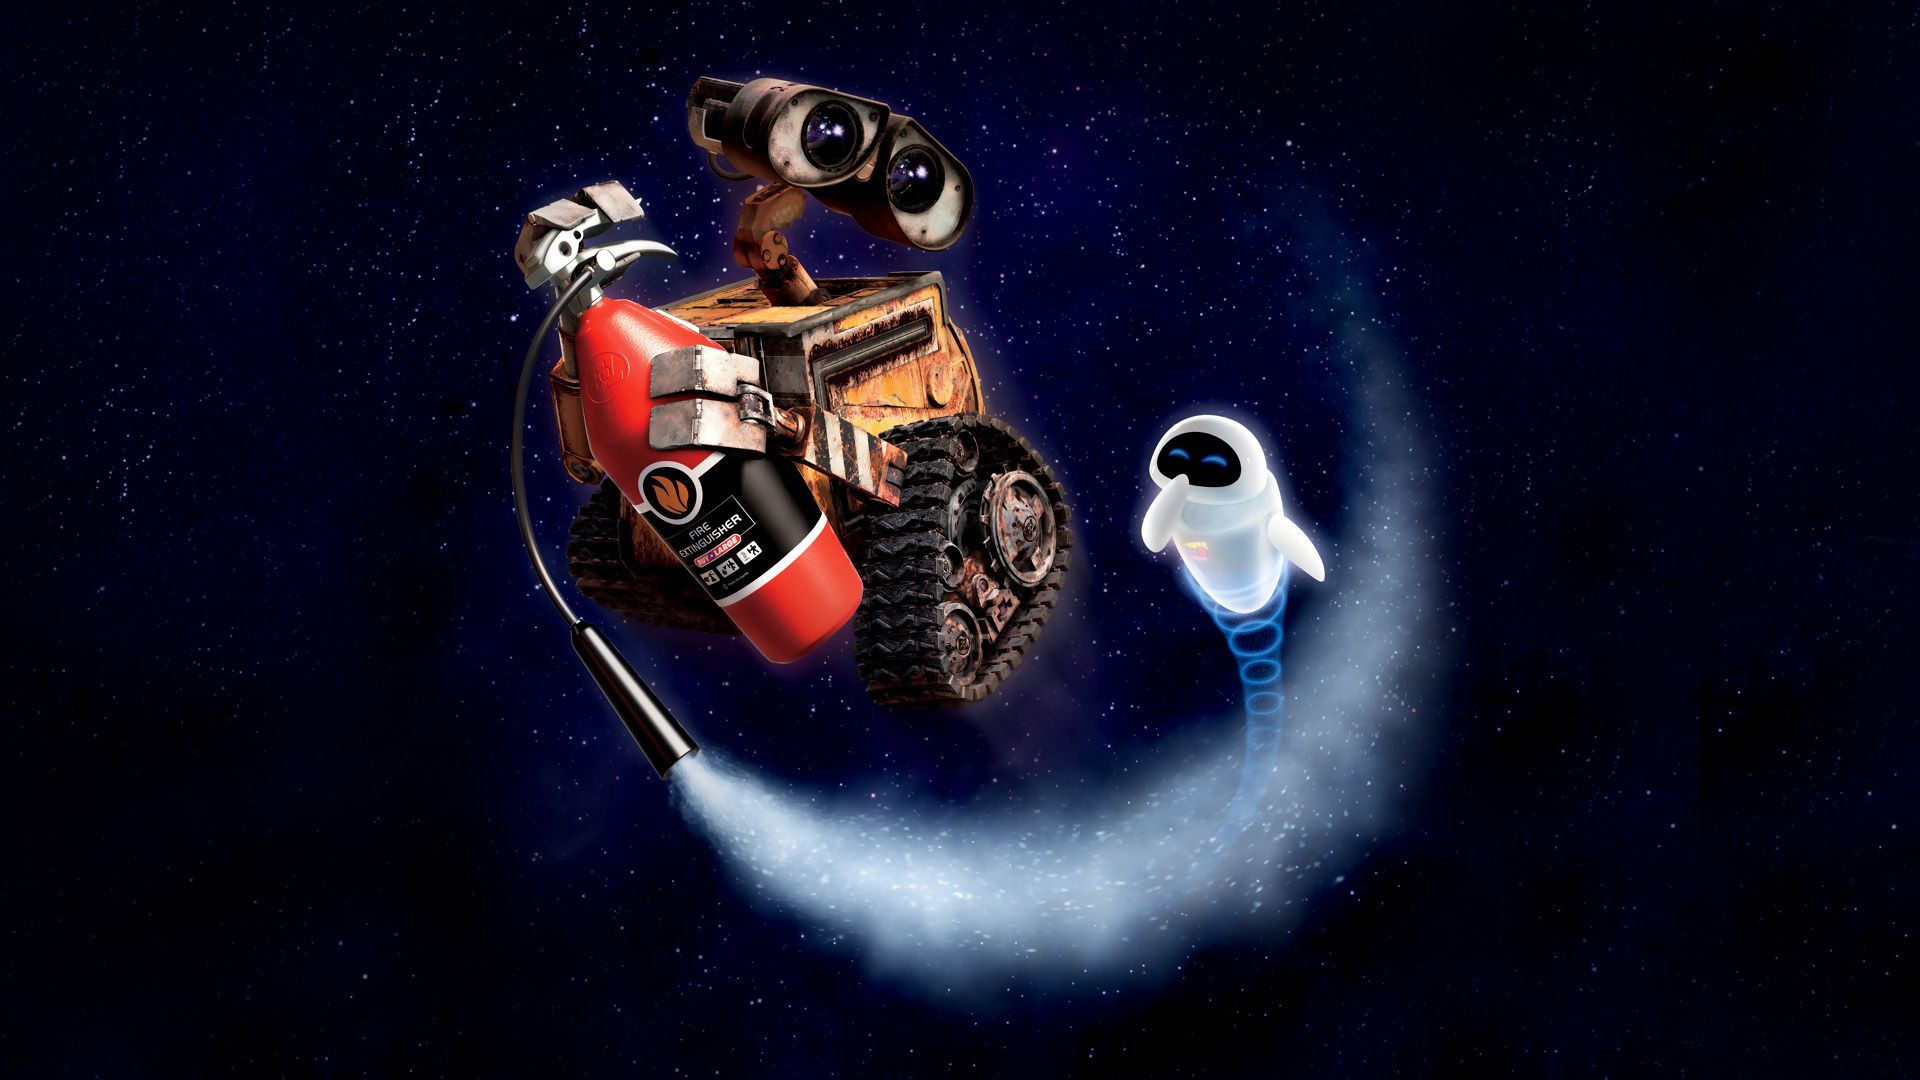 wall e wallpaper iphone